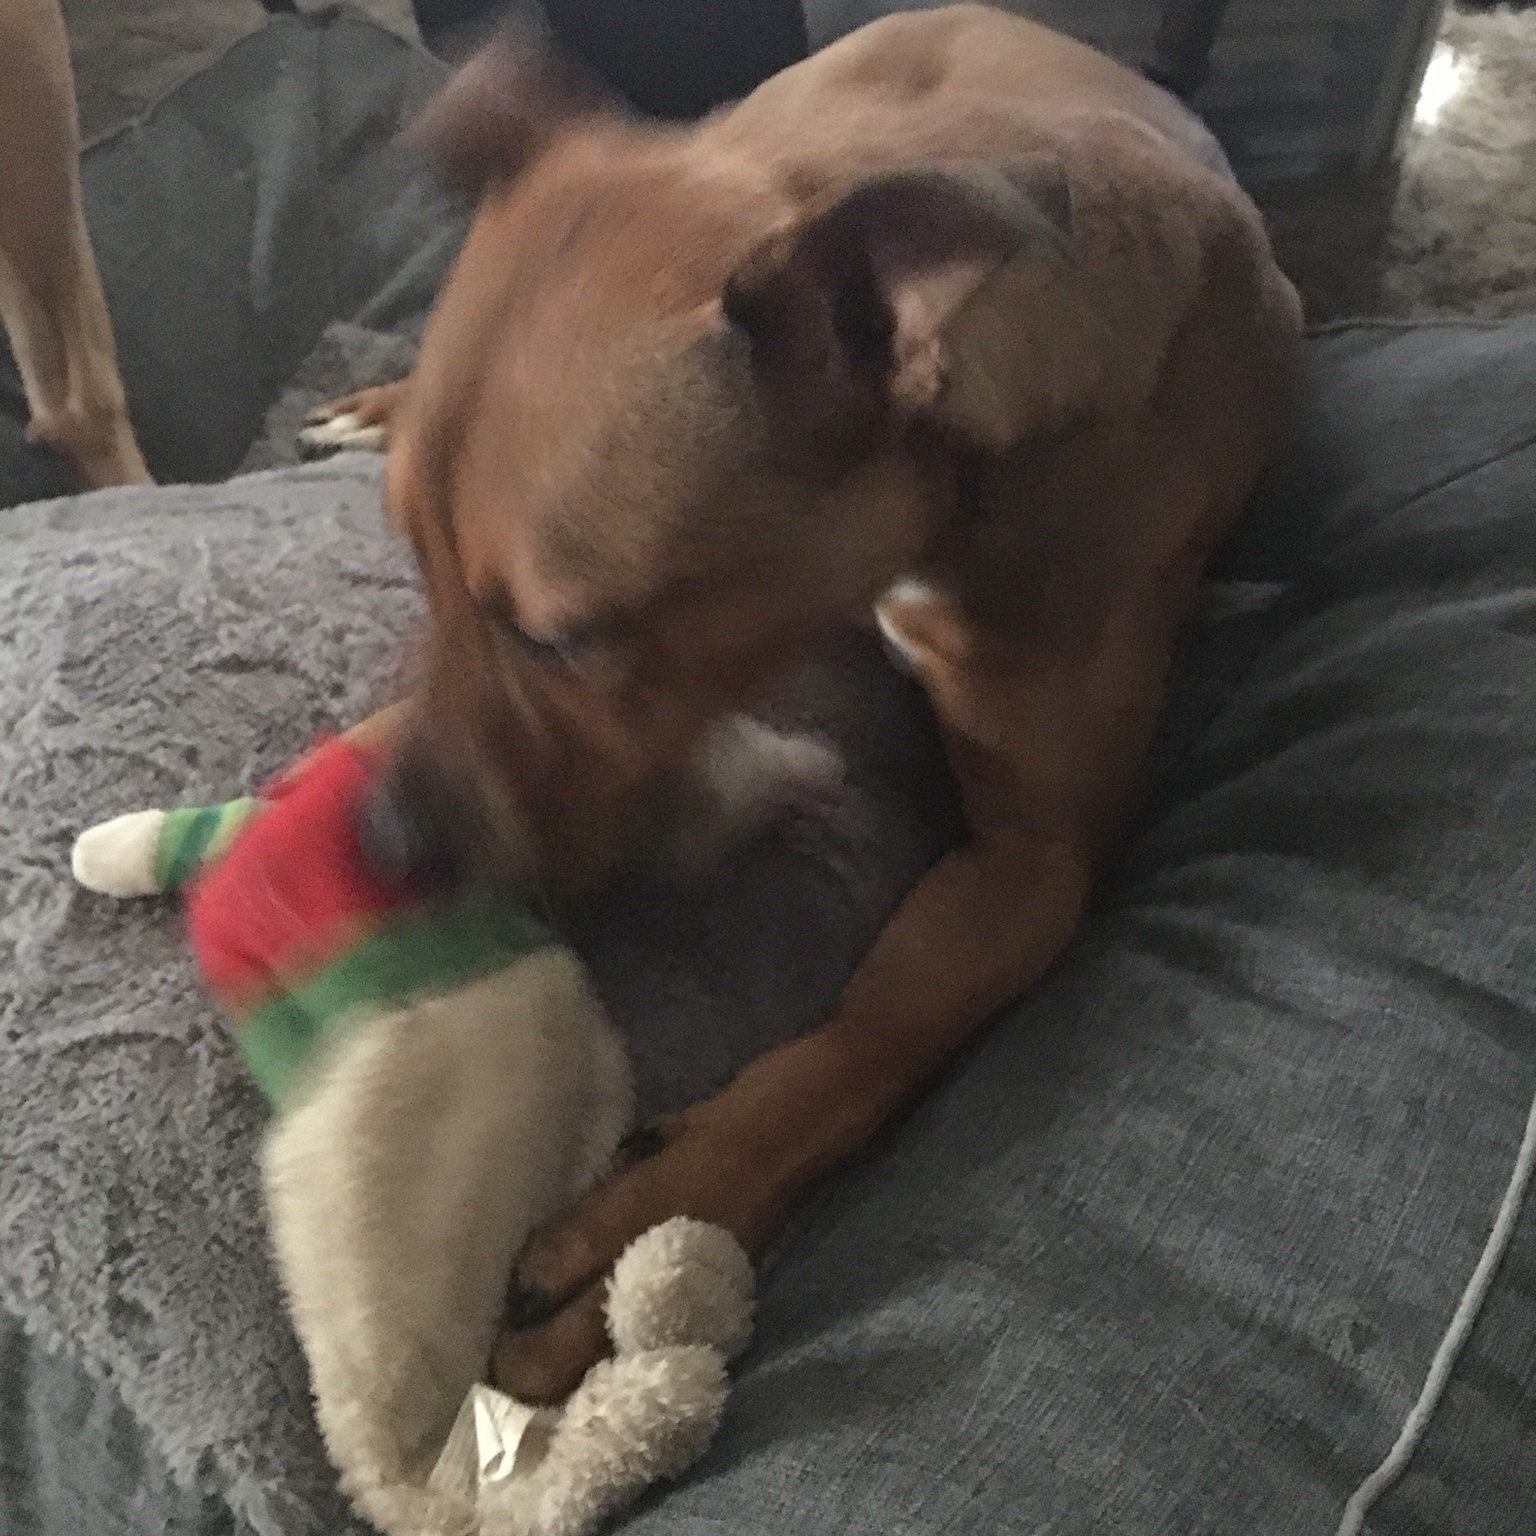 December 2018 - Murphy 1st Christmas with us. As you can see, he is on his bed playing with a stuffed toy. Pic December 2018.